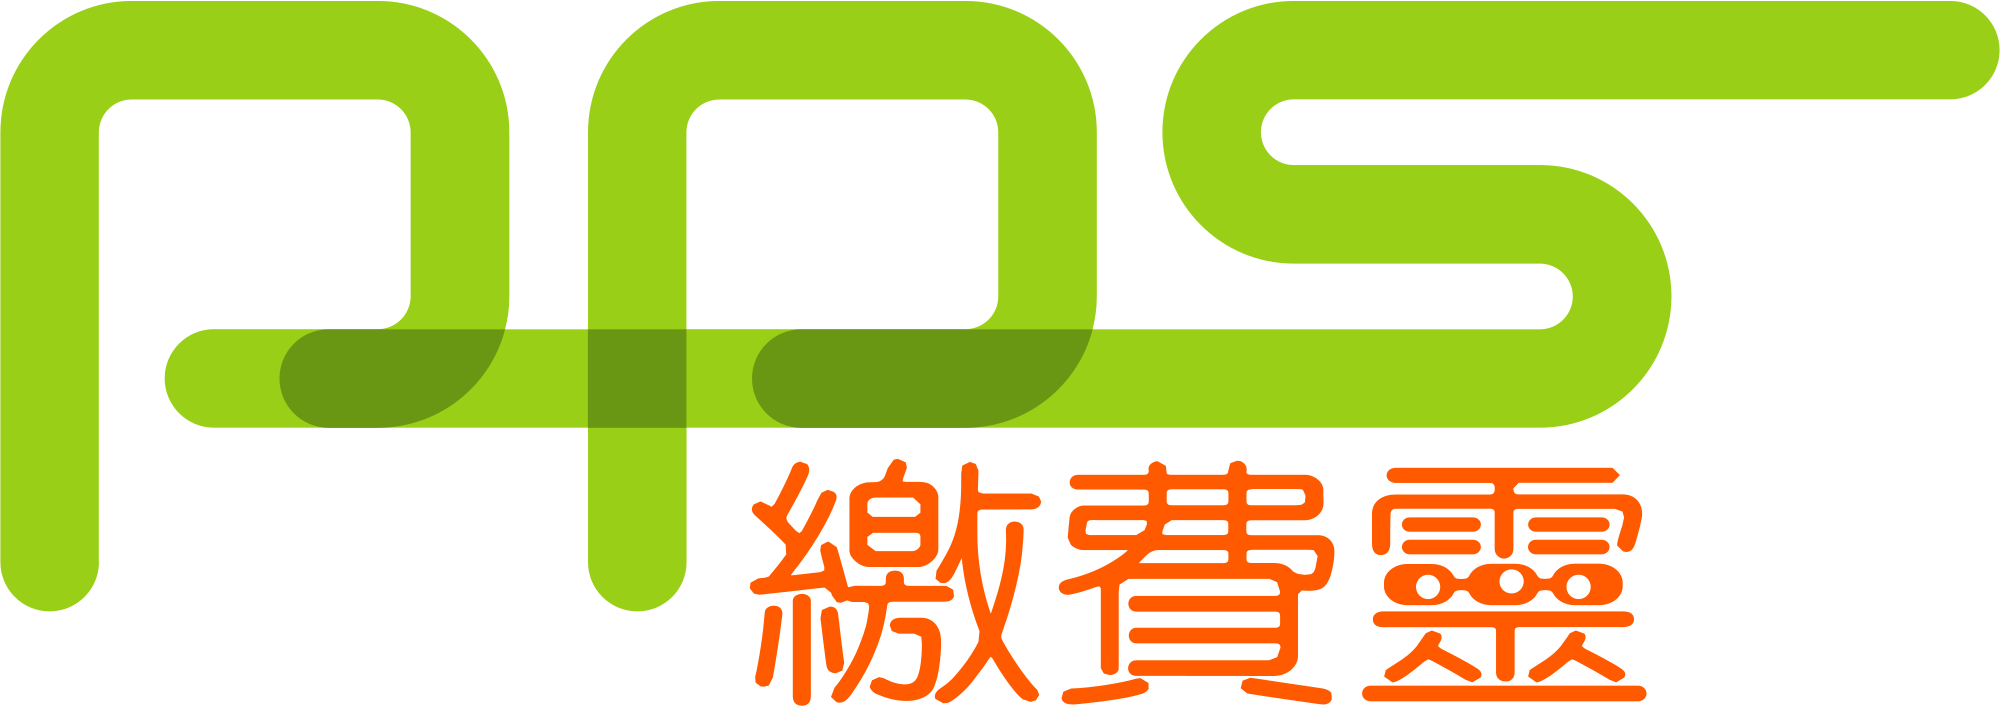 Pps png 6 » PNG Image.